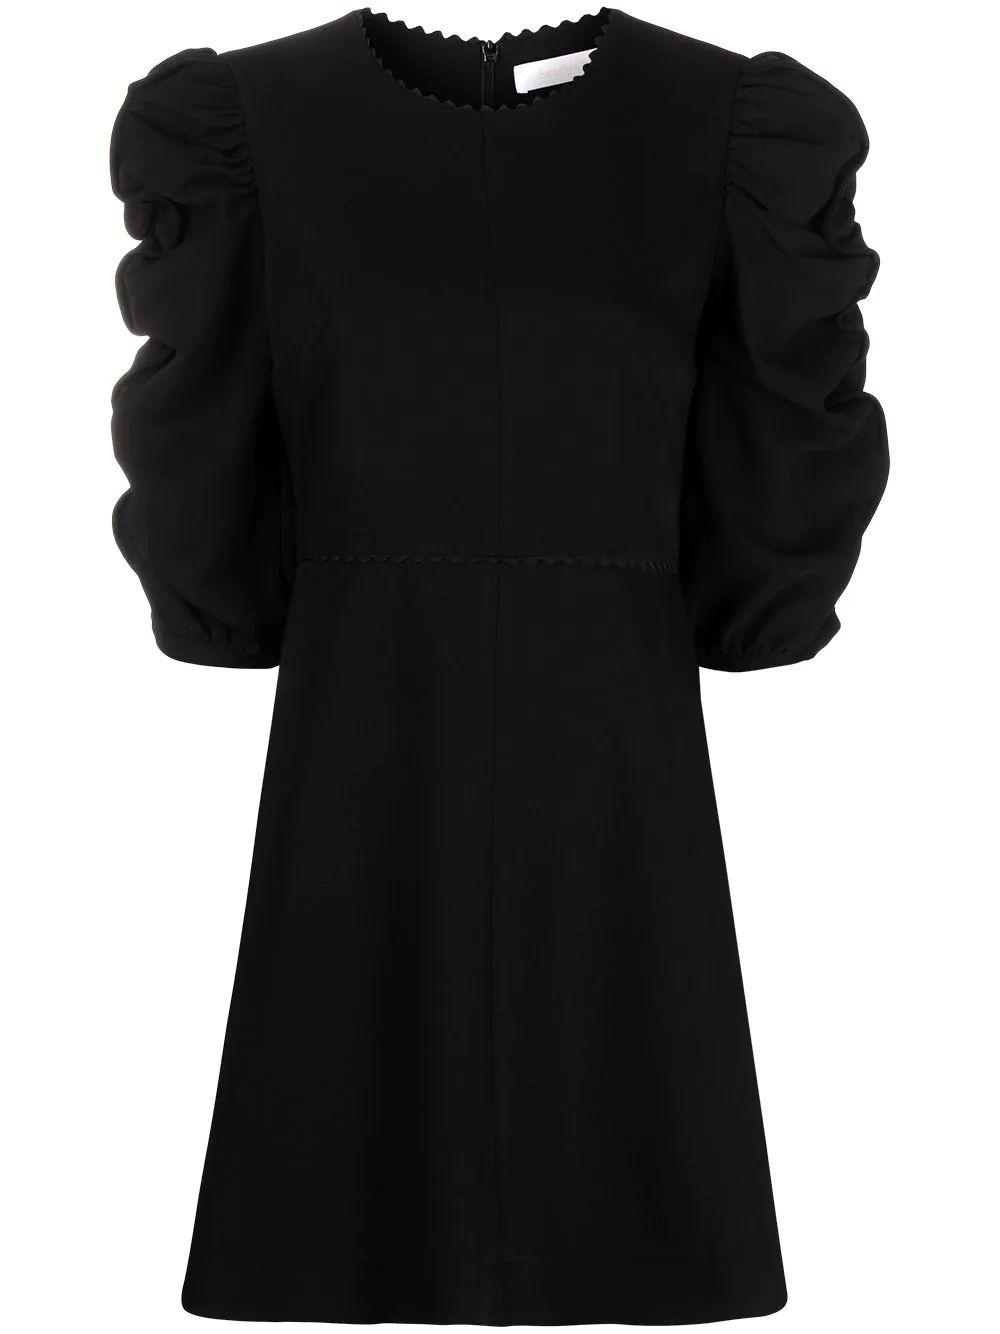 Ruched Sleeve Dress Item # CHS21SRO02012